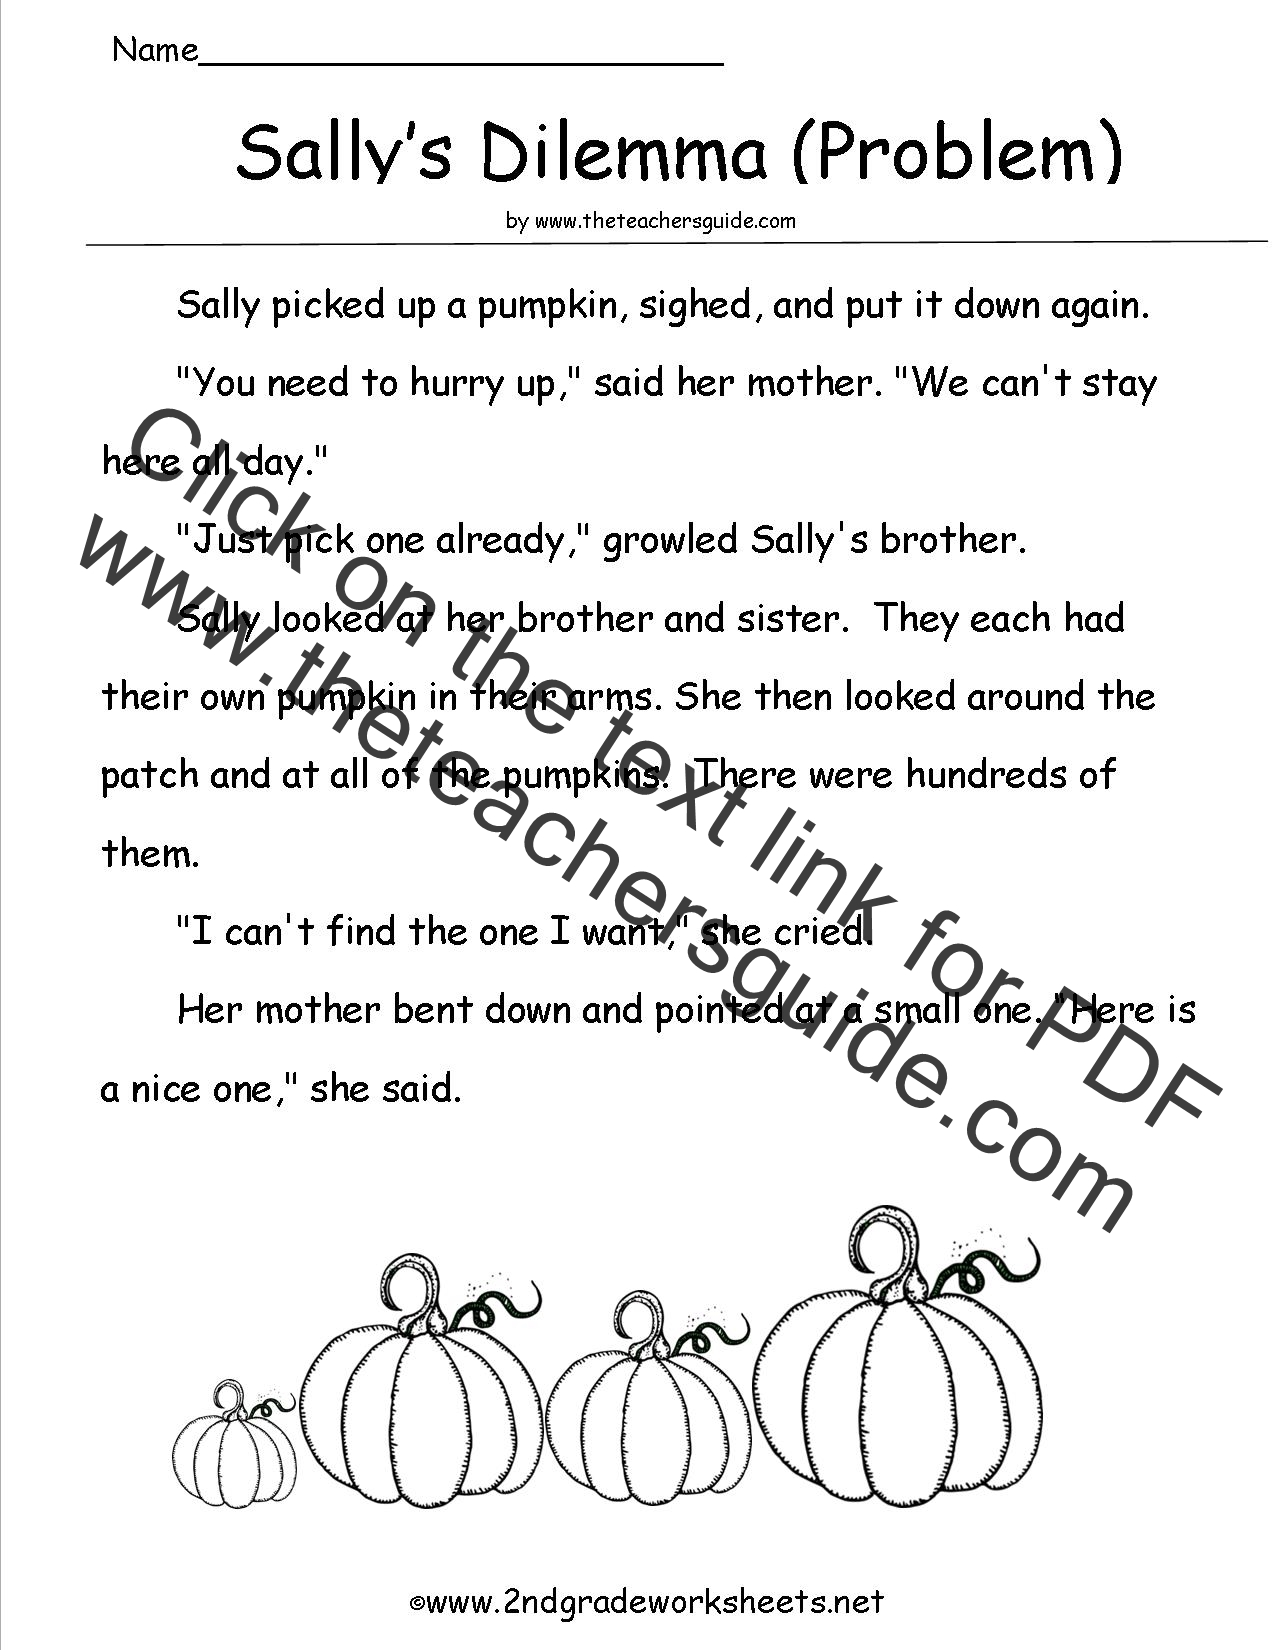 Halloween Worksheets and Printouts – Free Printable Reading Comprehension Worksheets for 2nd Grade